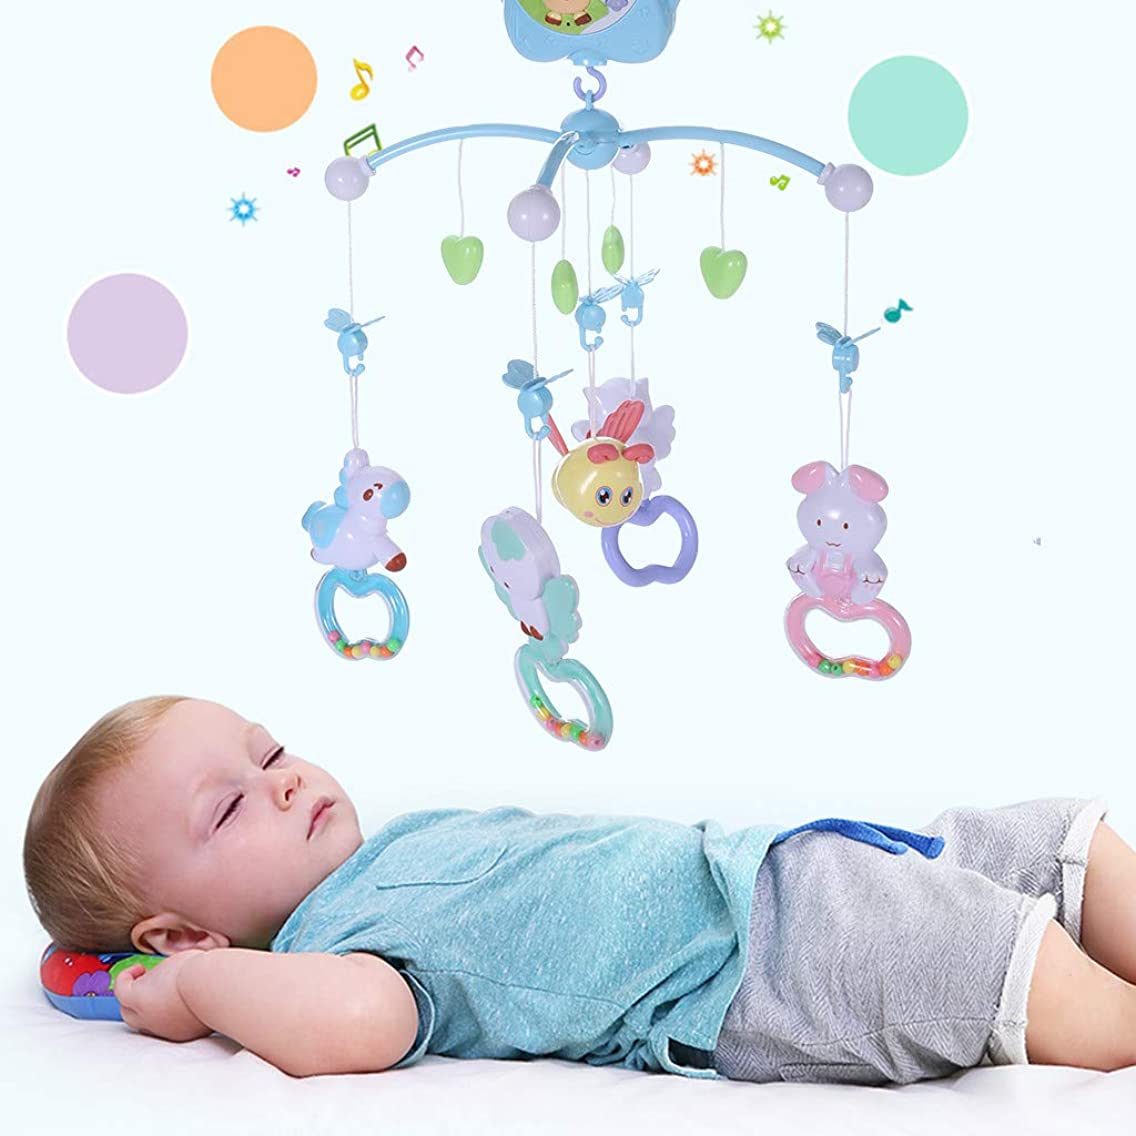 Viough Baby Crib Musical Mobile Toy with Music Light Infant Bed Decoration Hanging Toy, with Remote Holder Projector